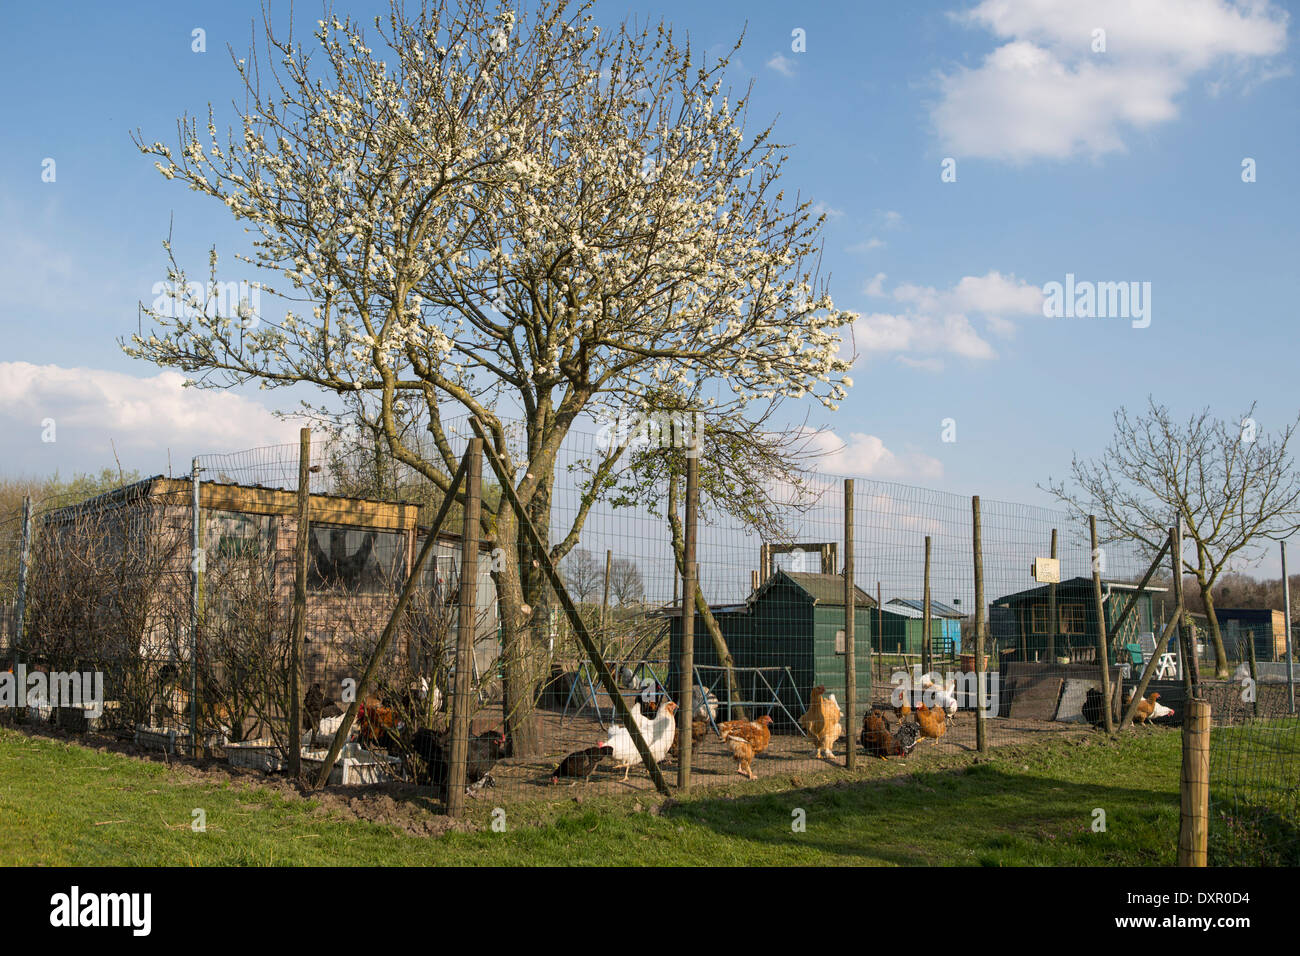 Chicken coop in an allotment garden with a blooming fruit  tree Stock Photo